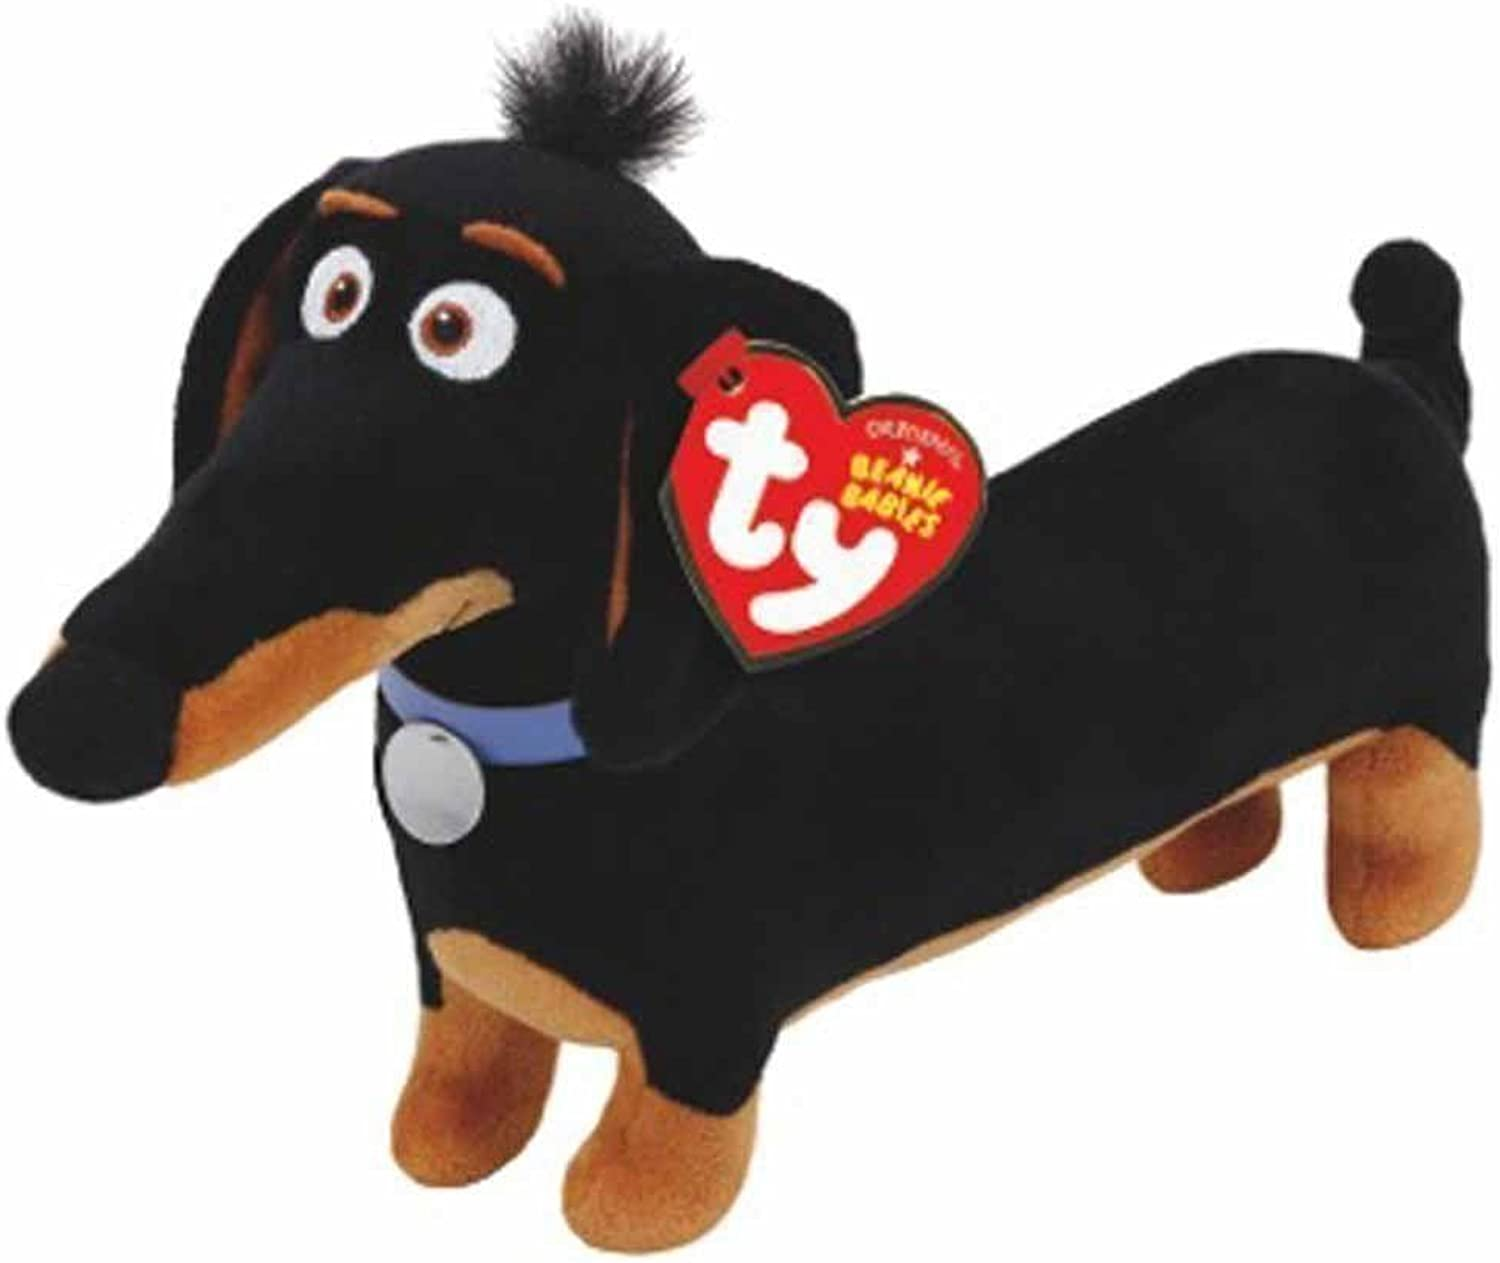 Unbrand TY Beanie Babies The Secret Life of Pets Buddy 11 Plush Toy ( New) Licensed